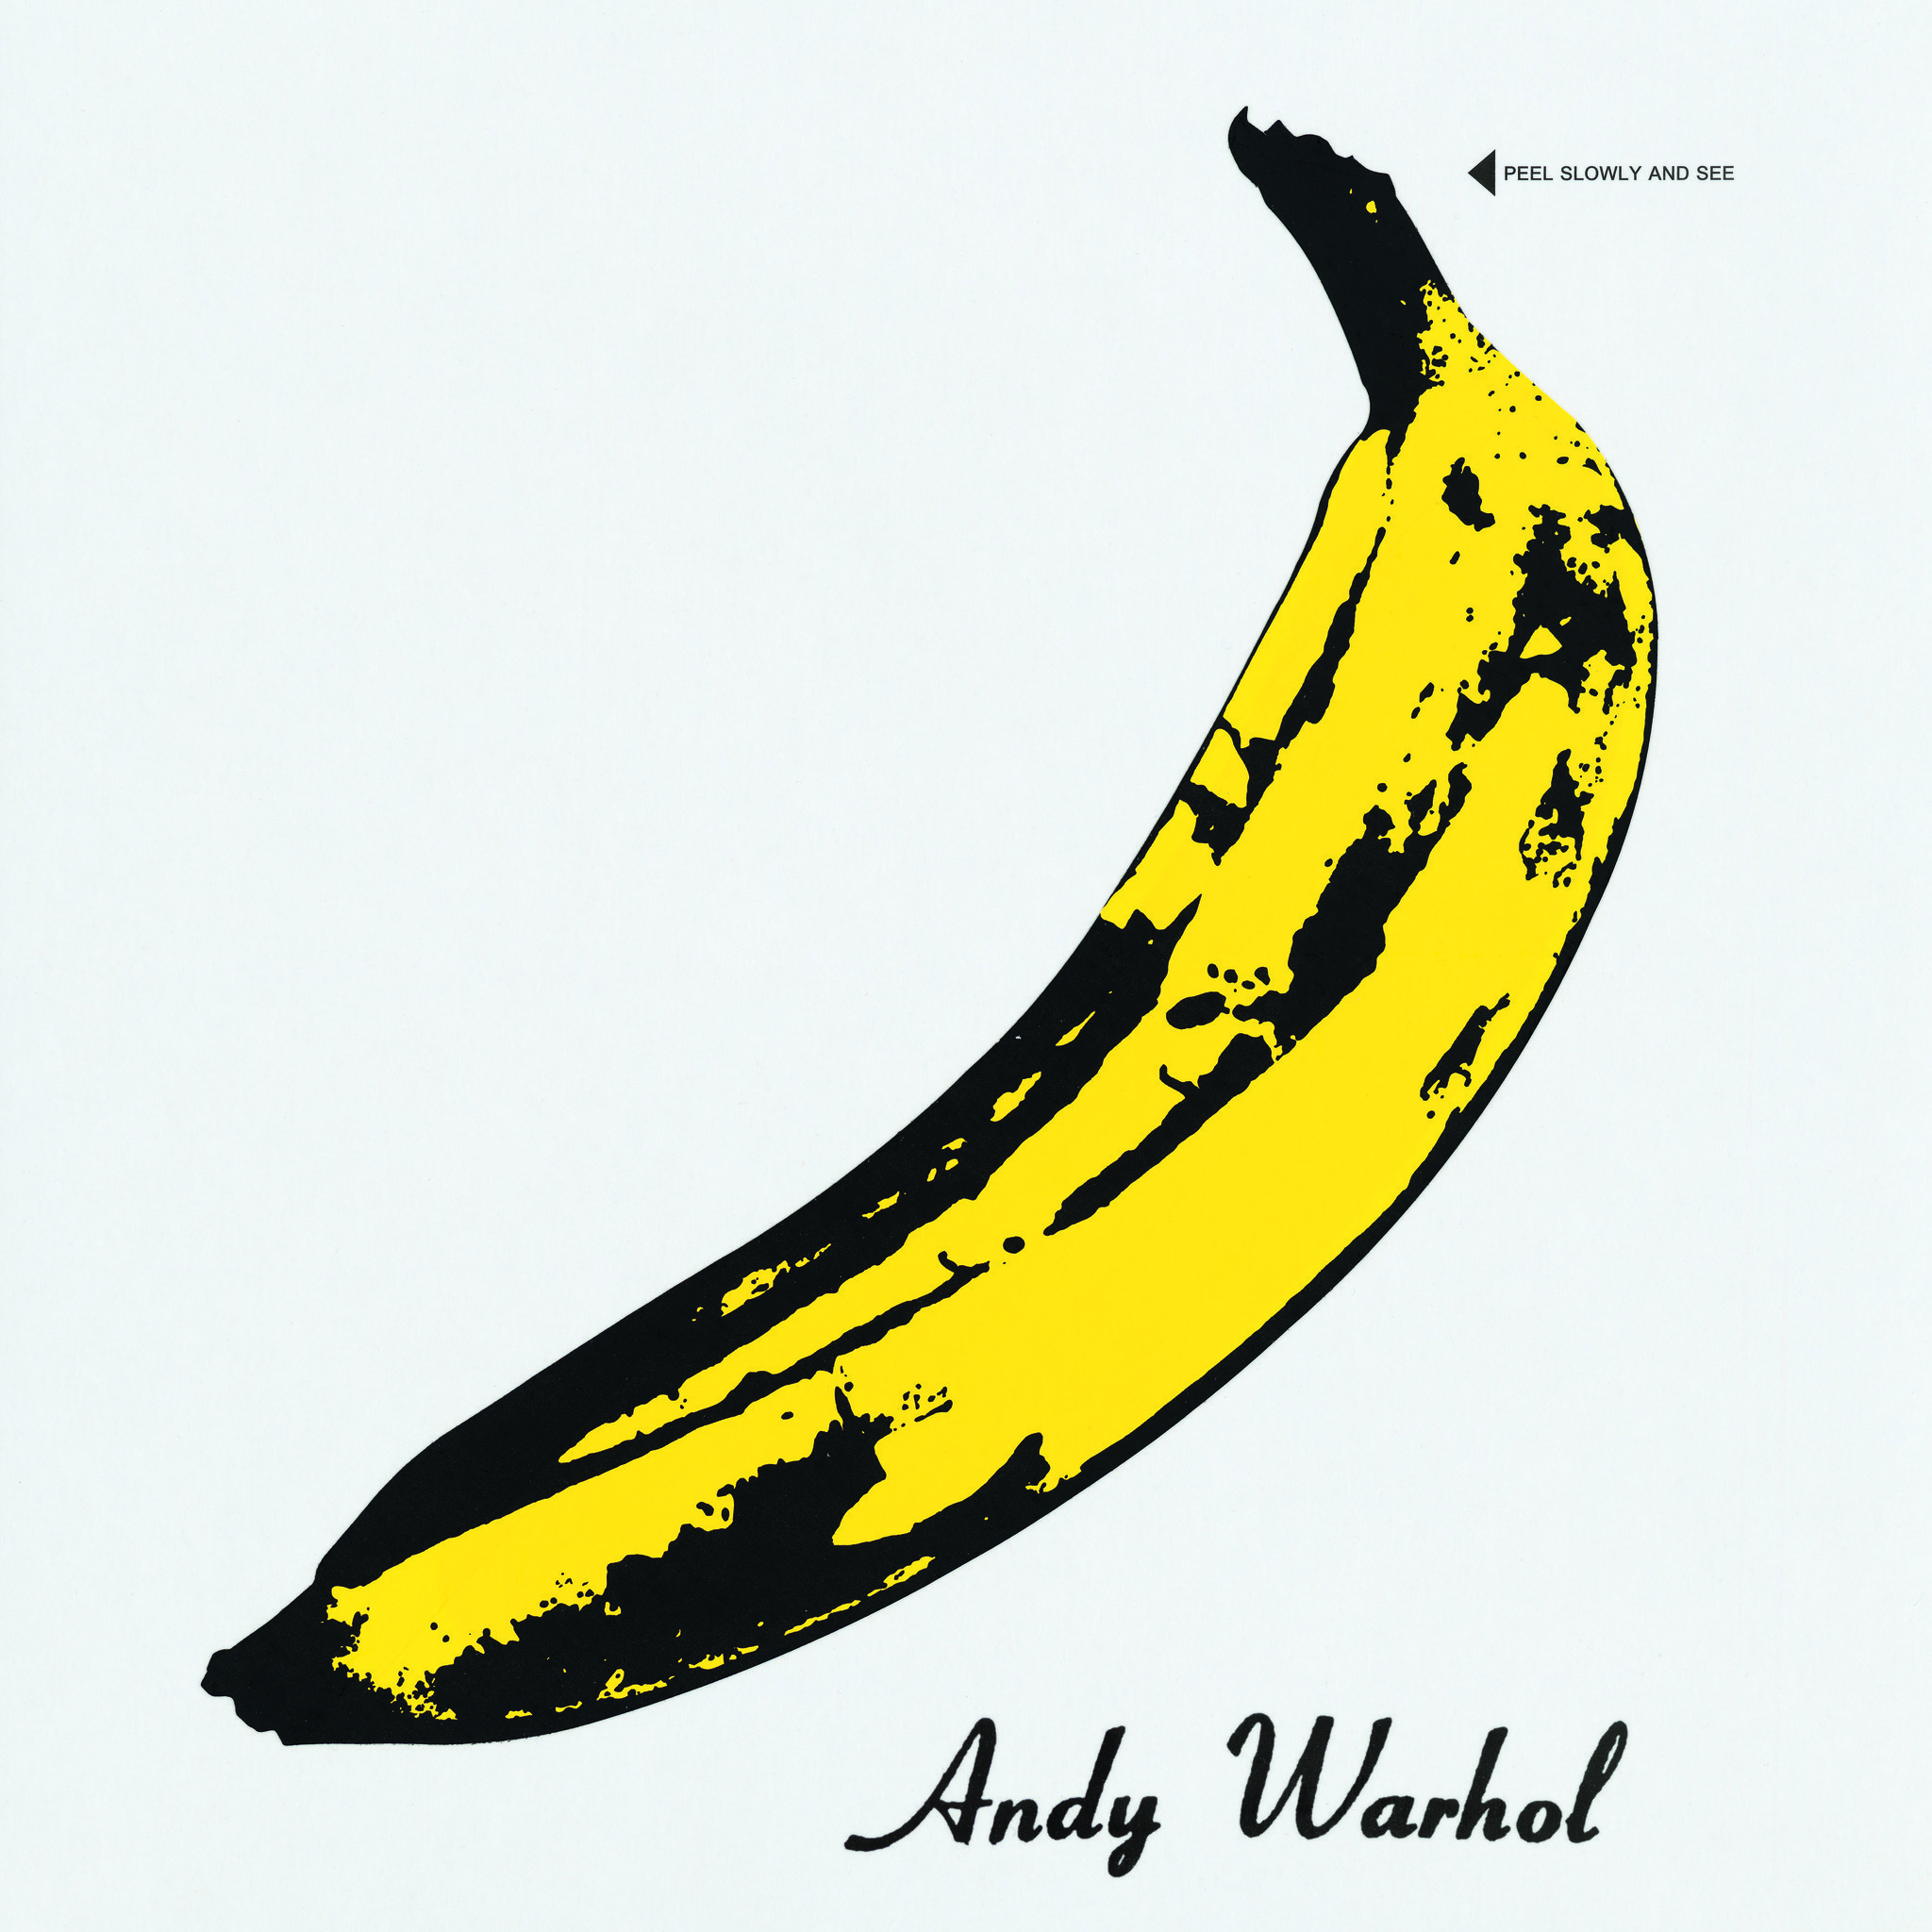 Andy Warhol for the Velvet Underground and Nico, 1967